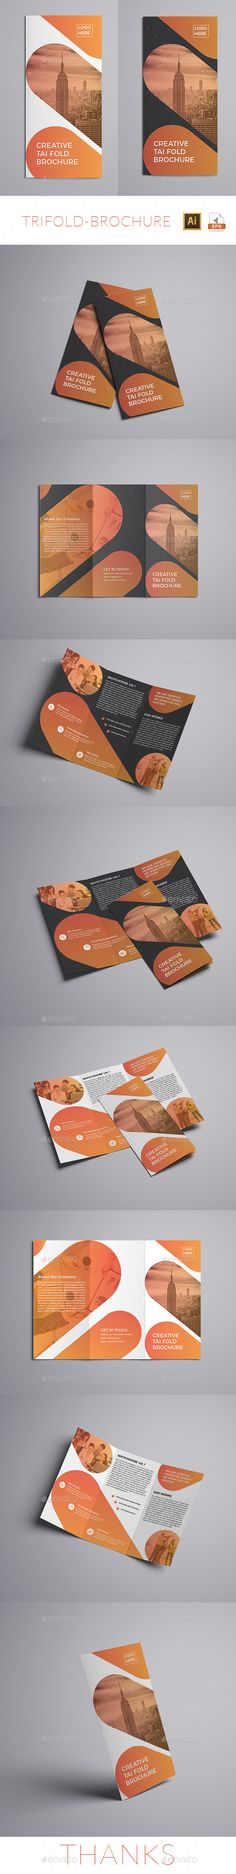 Trifold Brochure Template Vector EPS, AI Illustrator